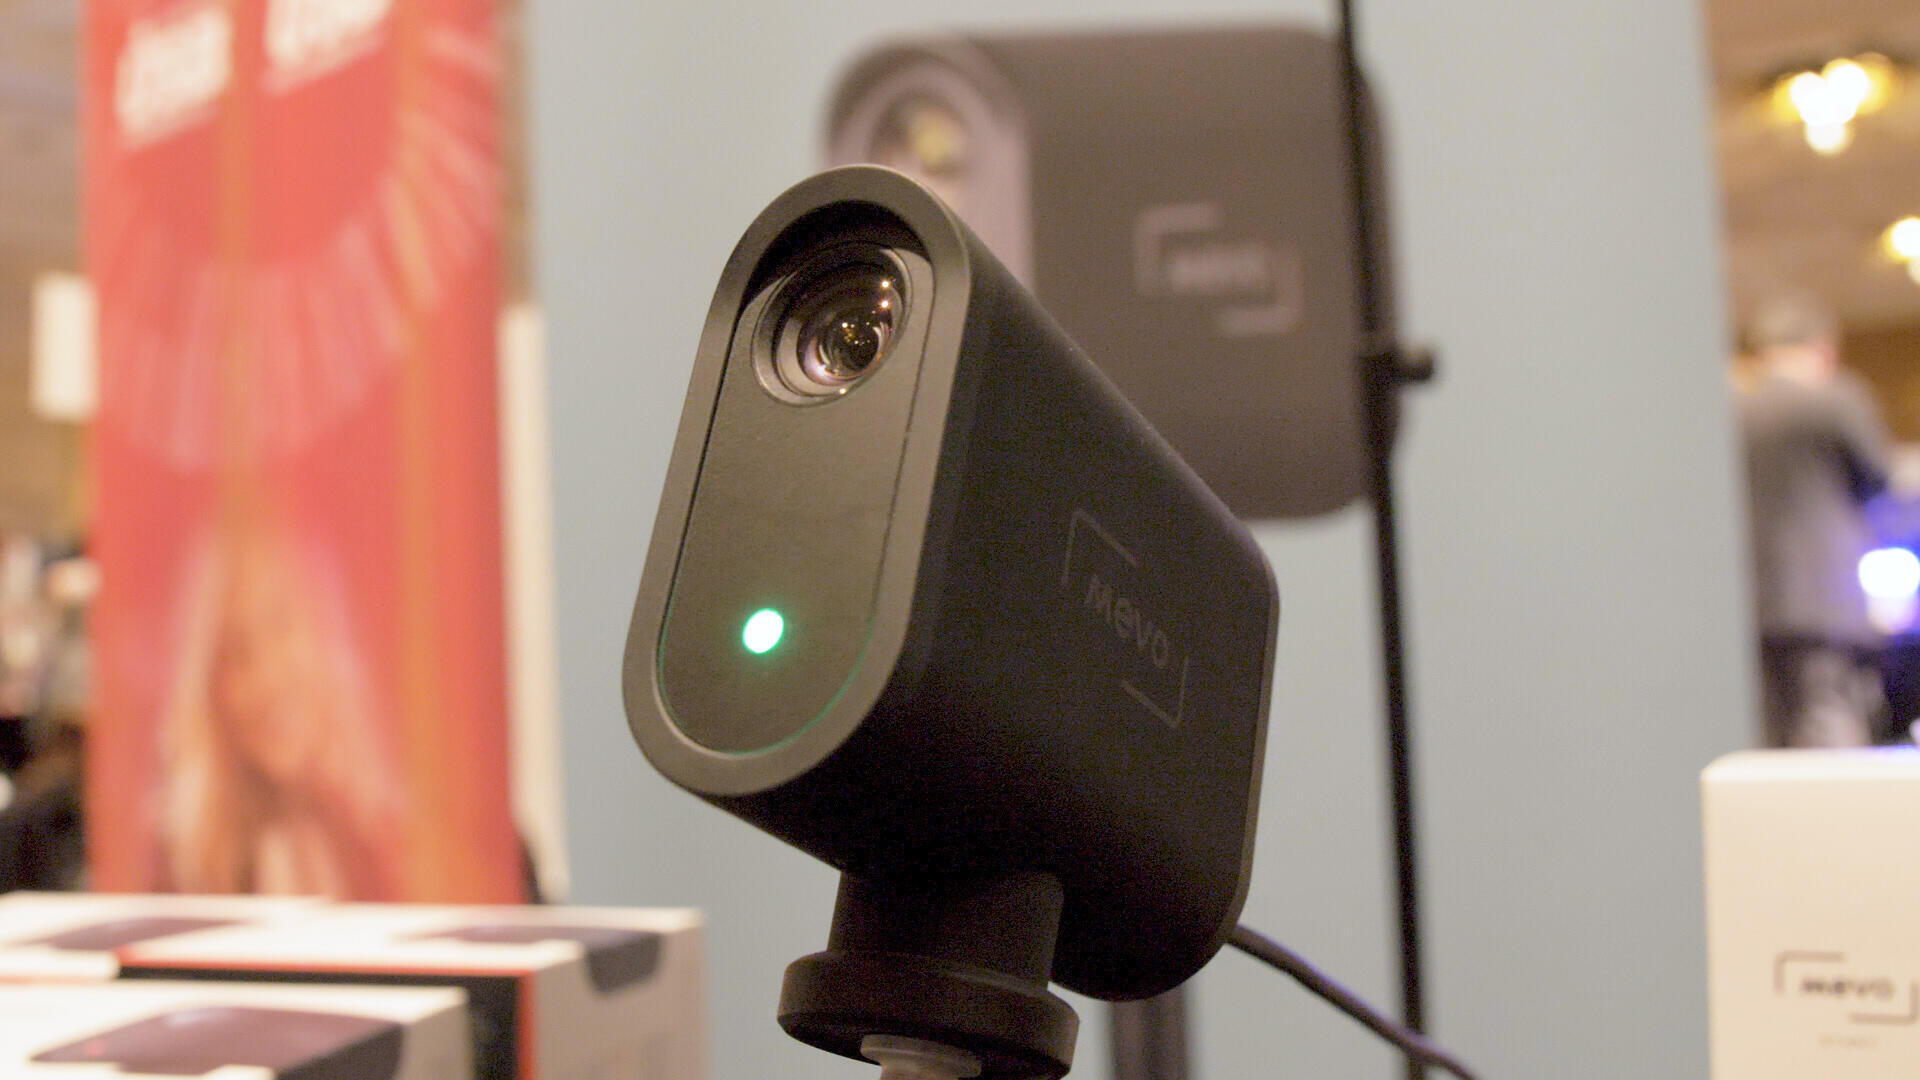 Video: The Mevo Start is a compact cam aimed at HD event streaming